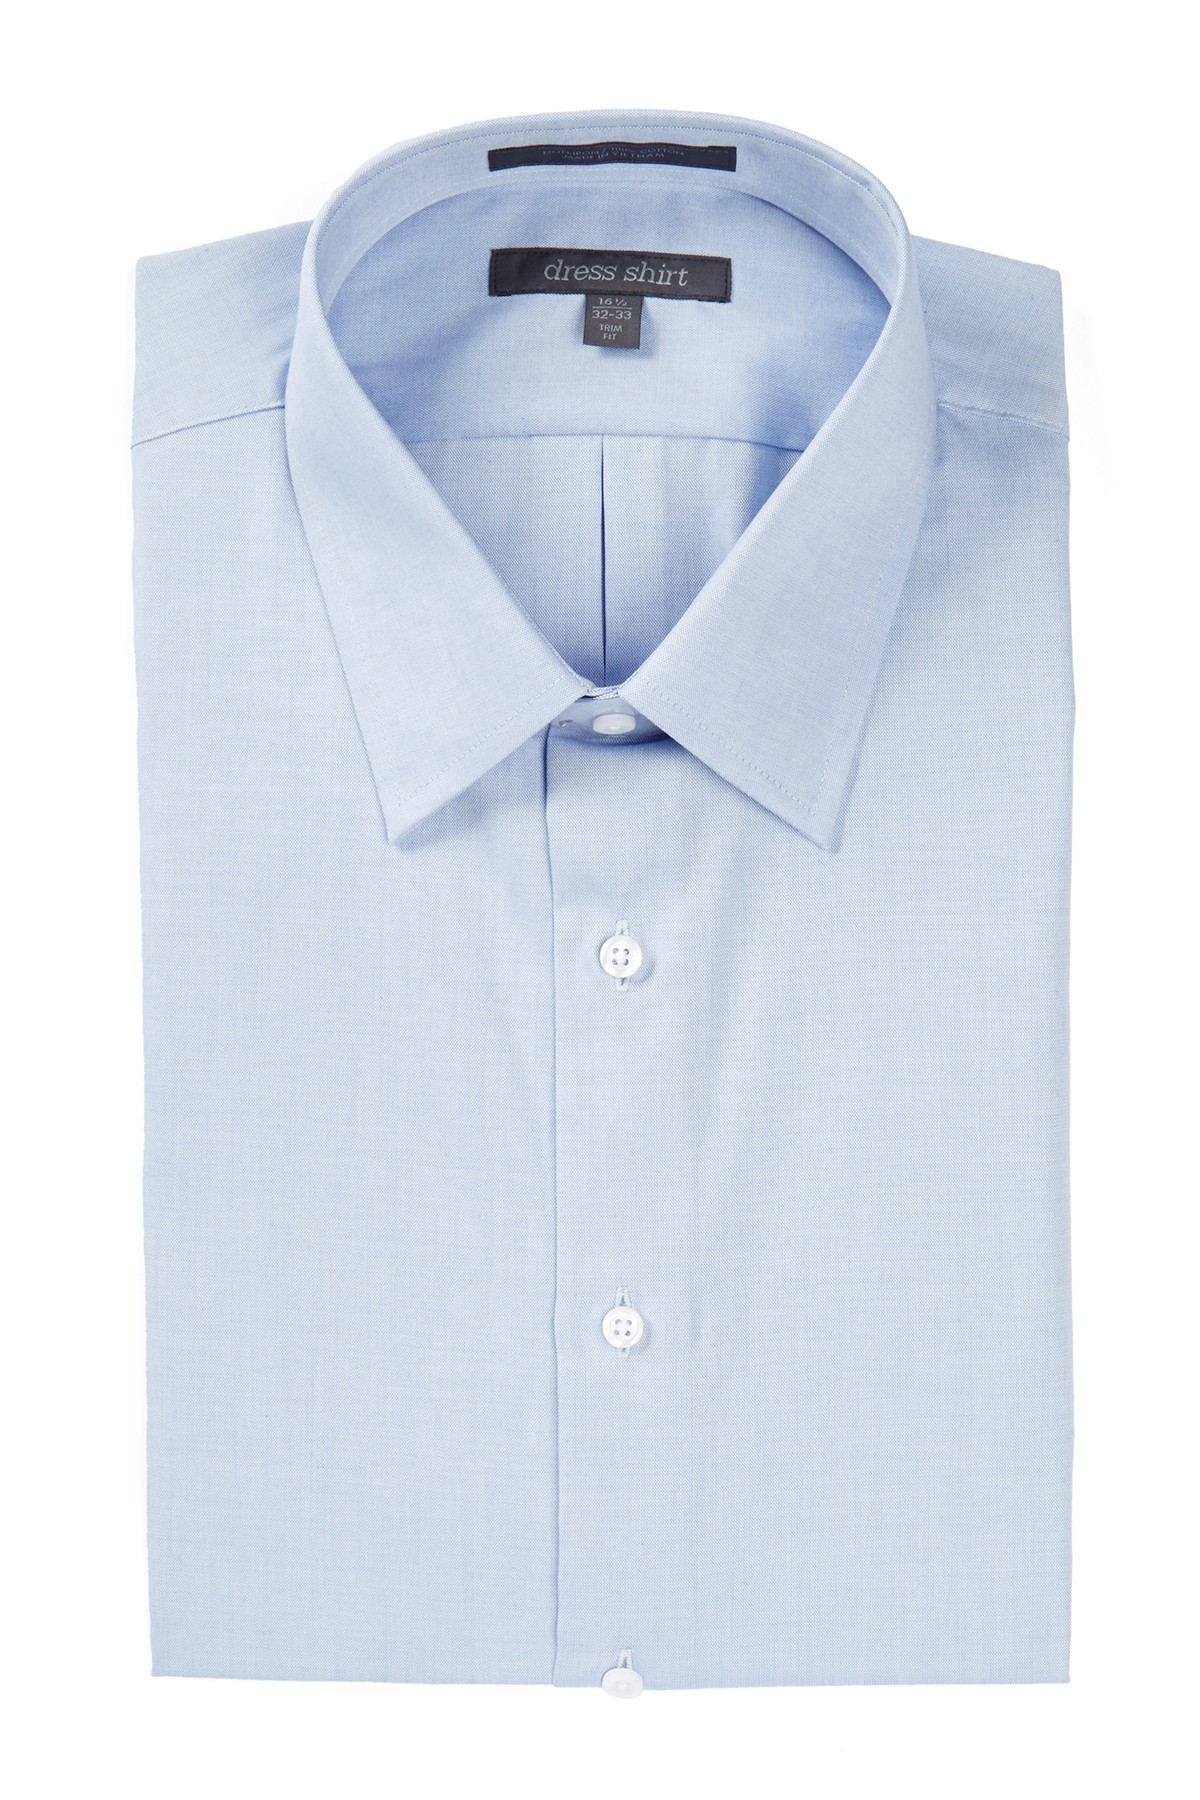 Nordstrom New Blue Sky Solid Mens Size 16 Suiting Dress Shirt